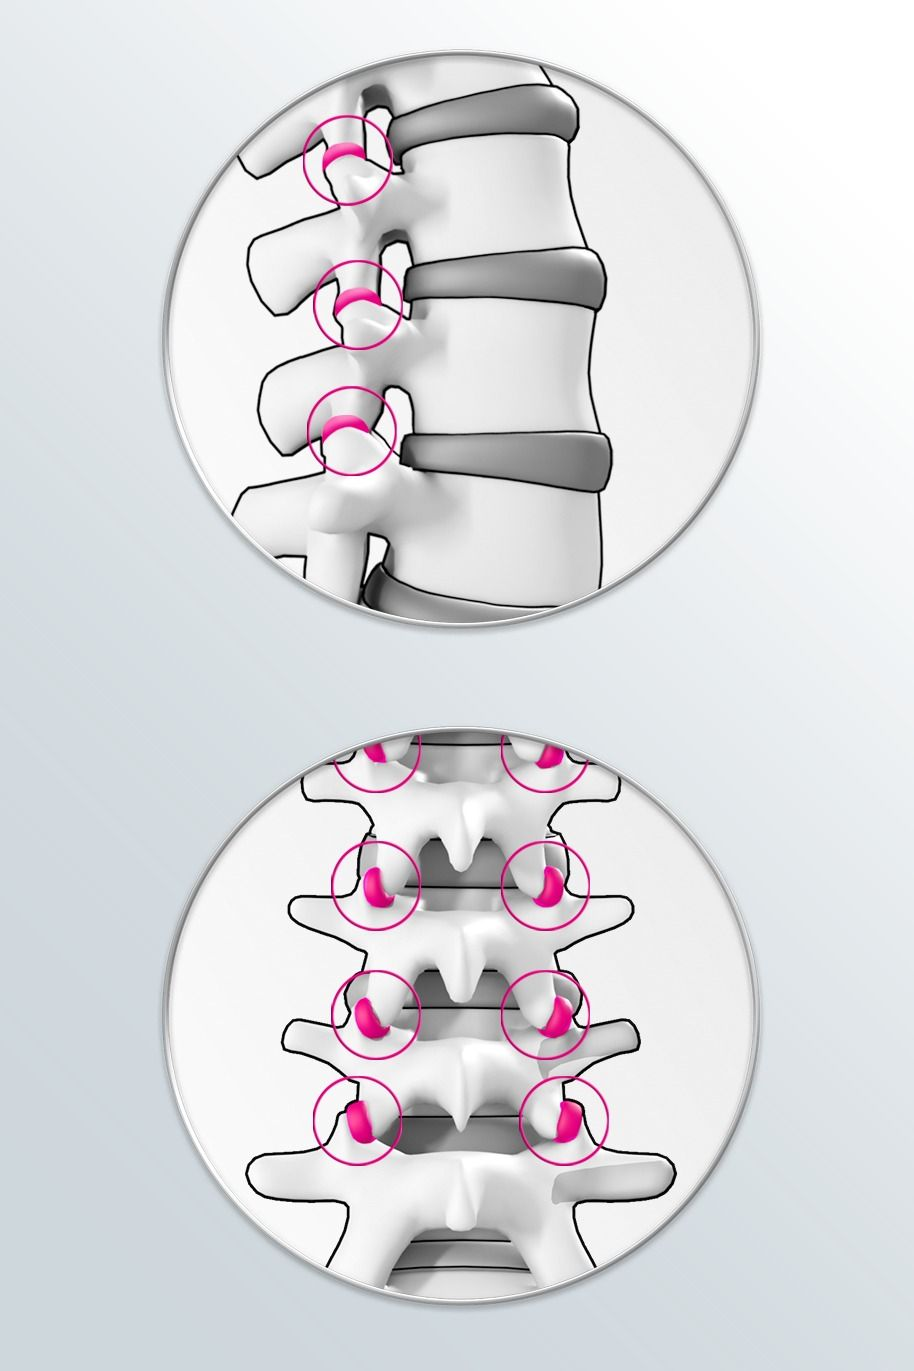 Joints between the vertebrae (facet joints)